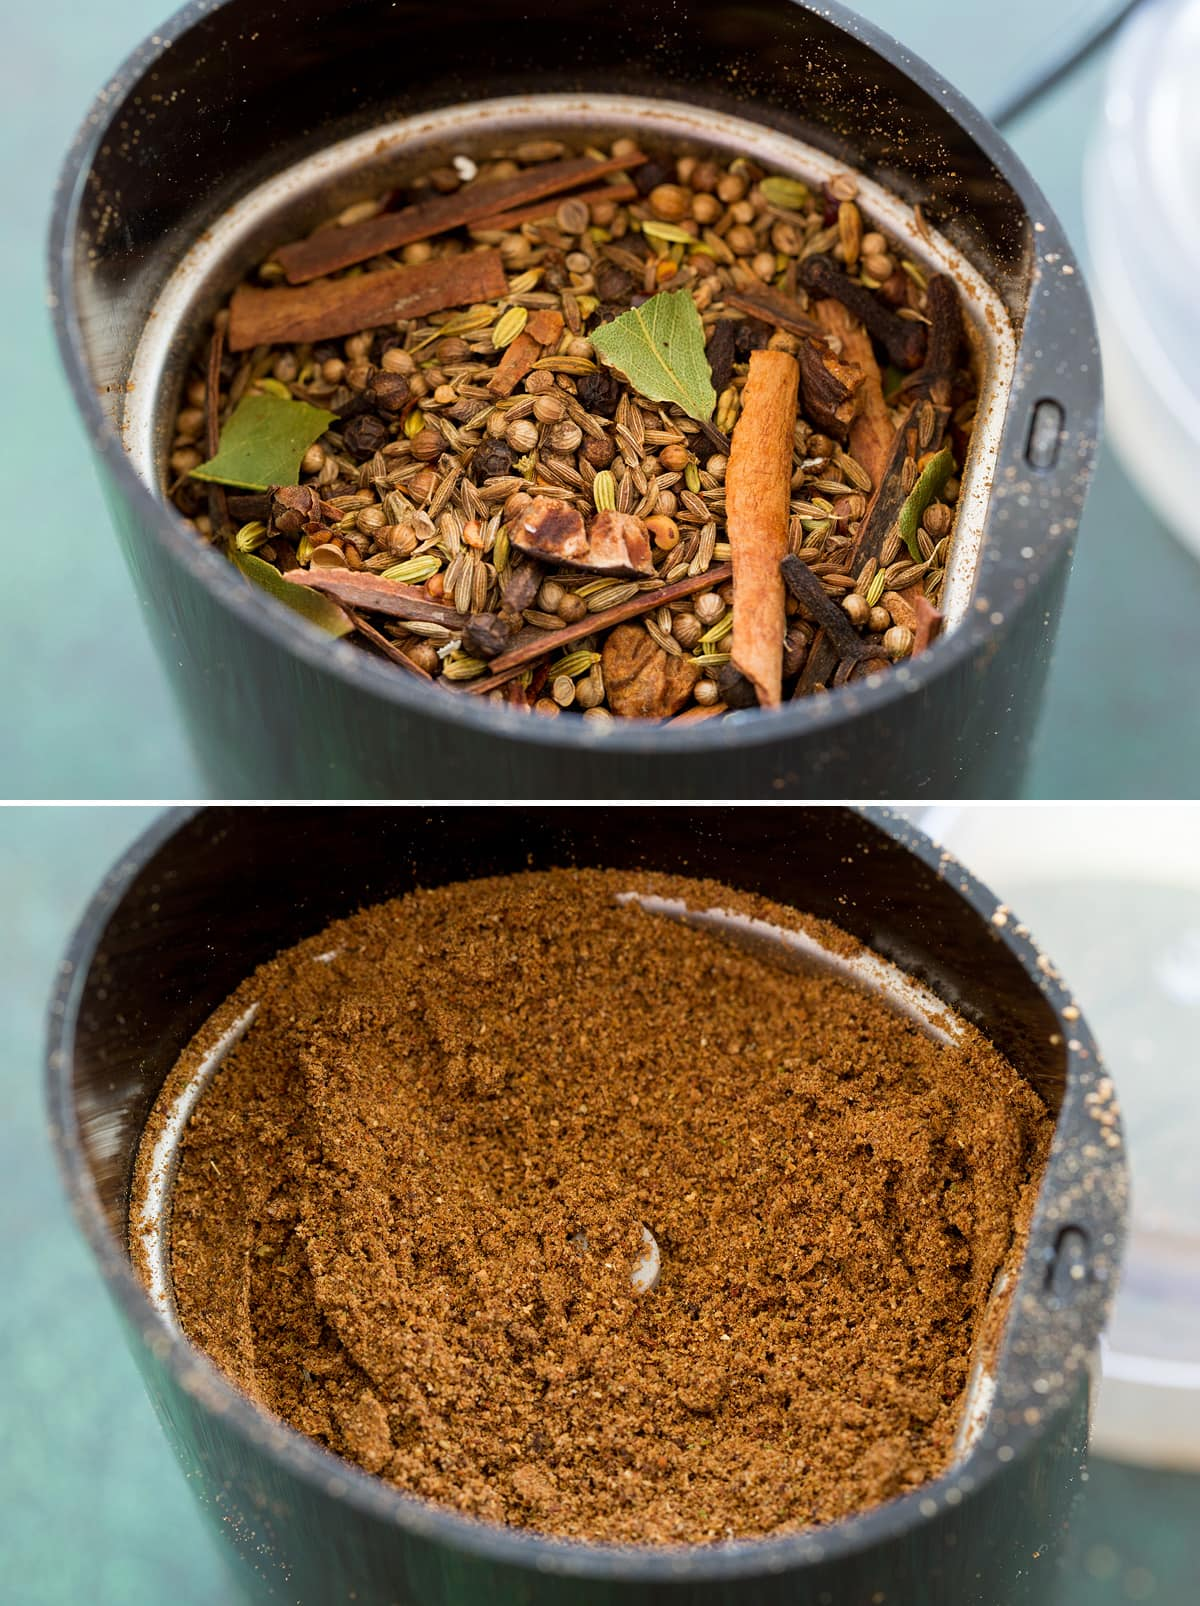 Collage of two photos showing garam masala in spice grinder before and after grinding.